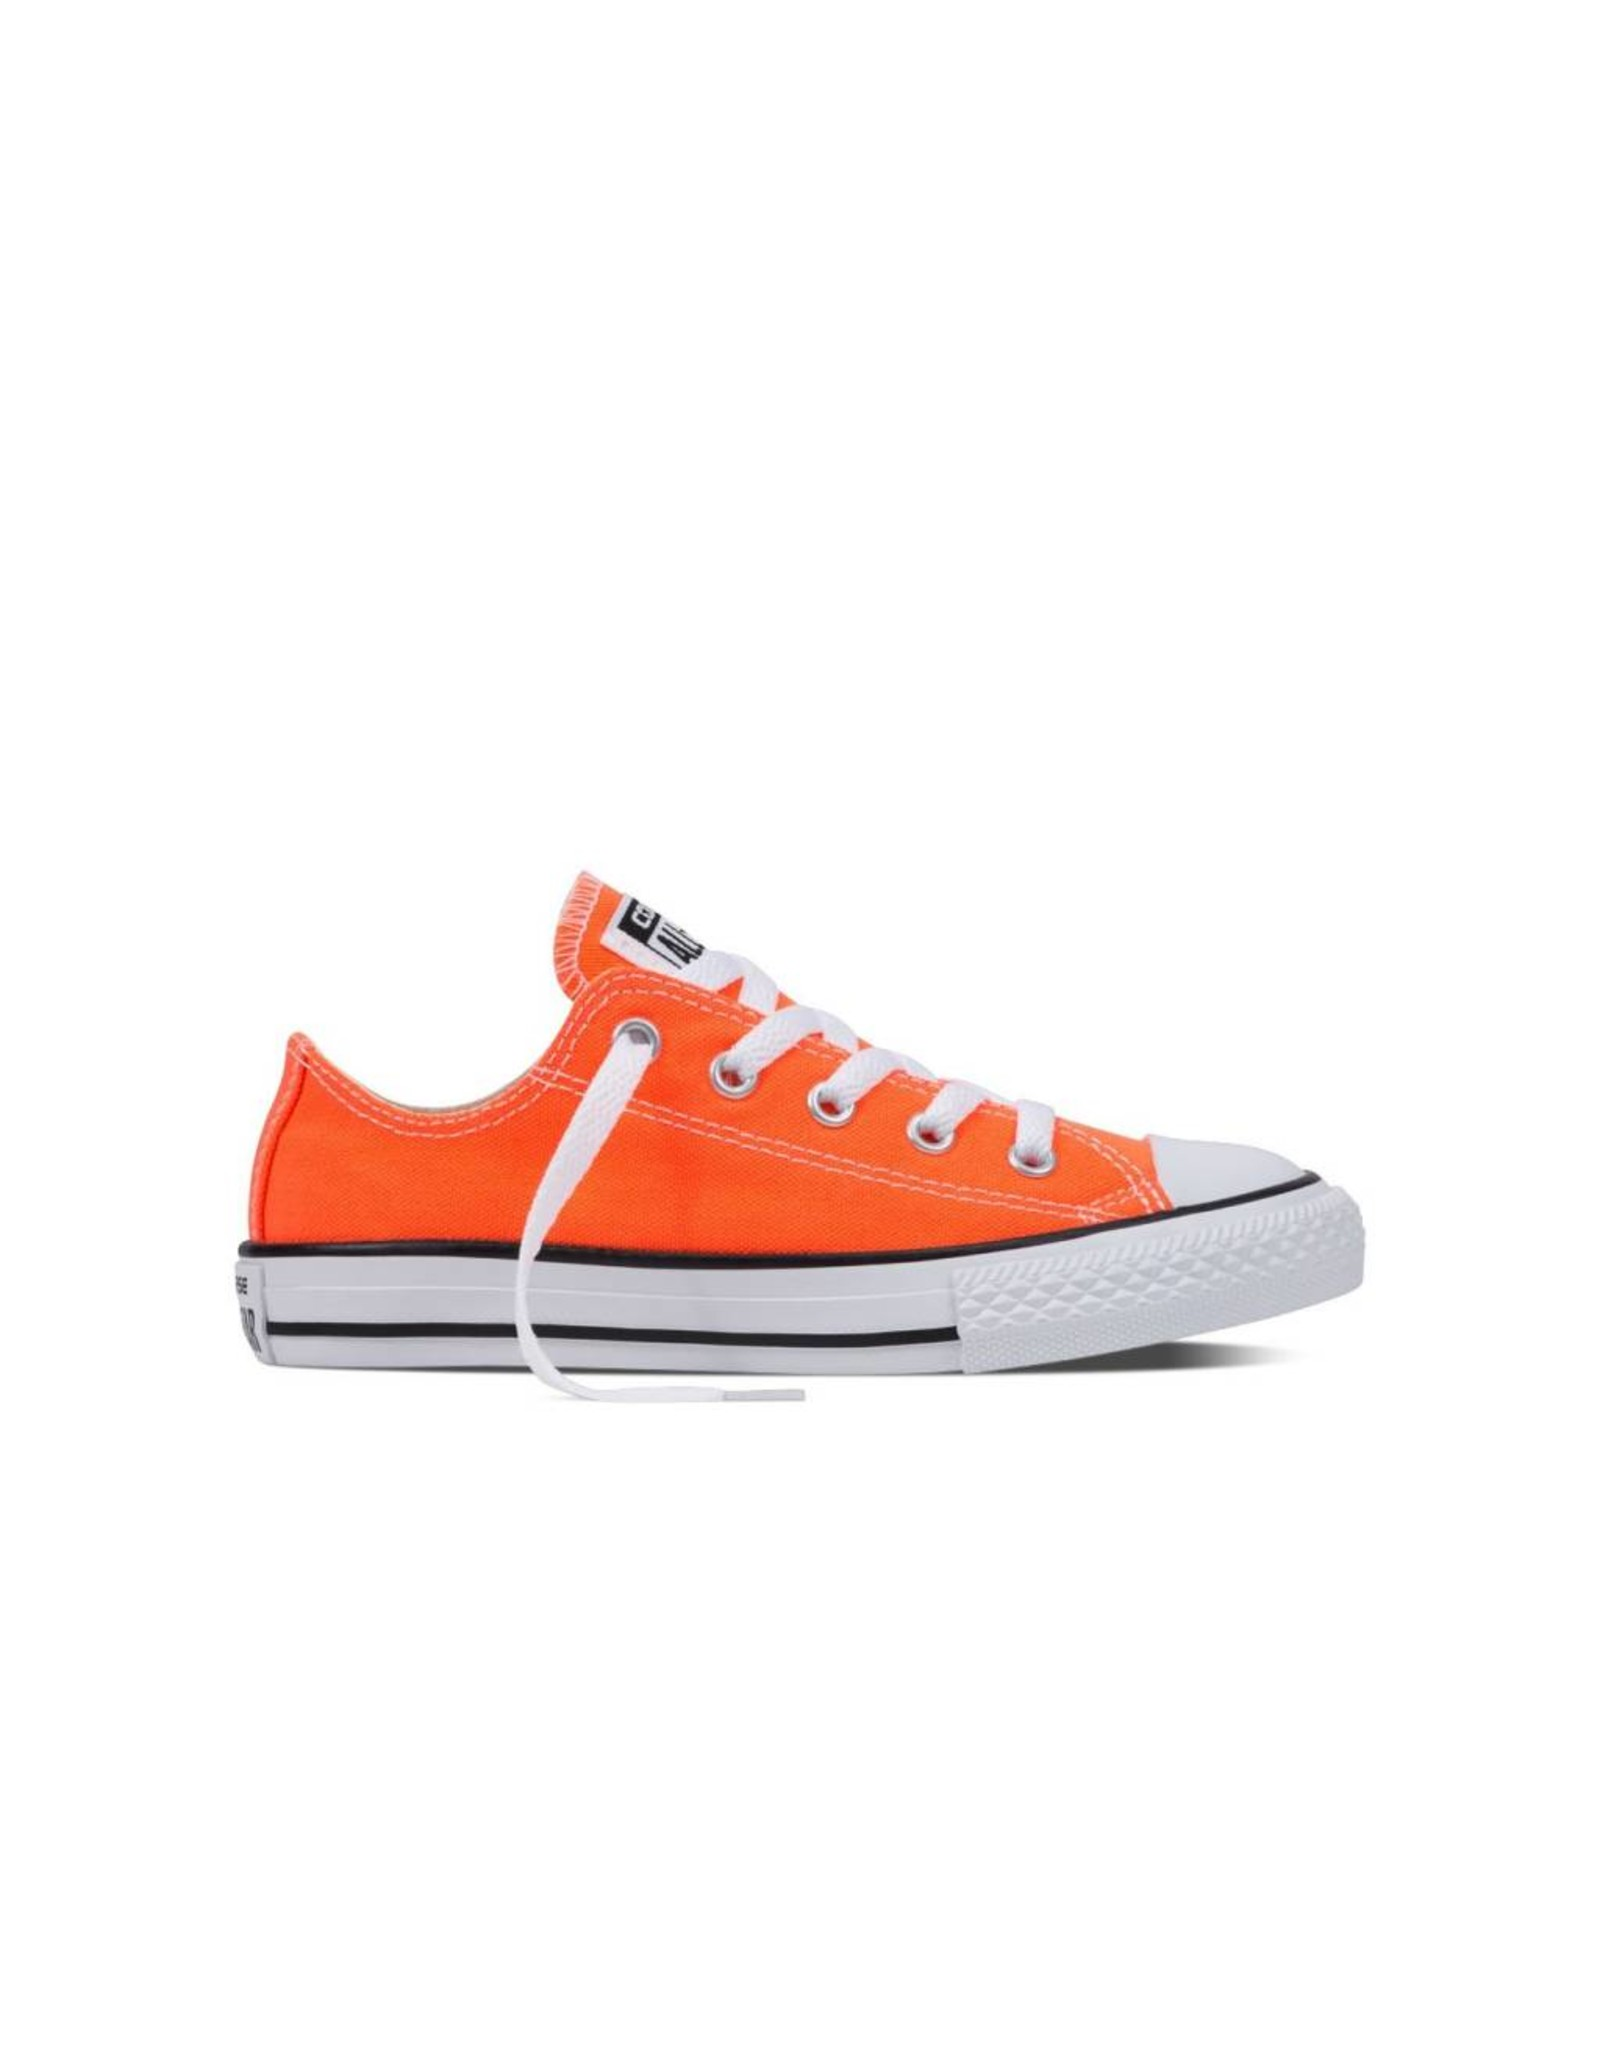 CONVERSE CHUCK TAYLOR OX HYPER ORANGE CWHYJ-355736C